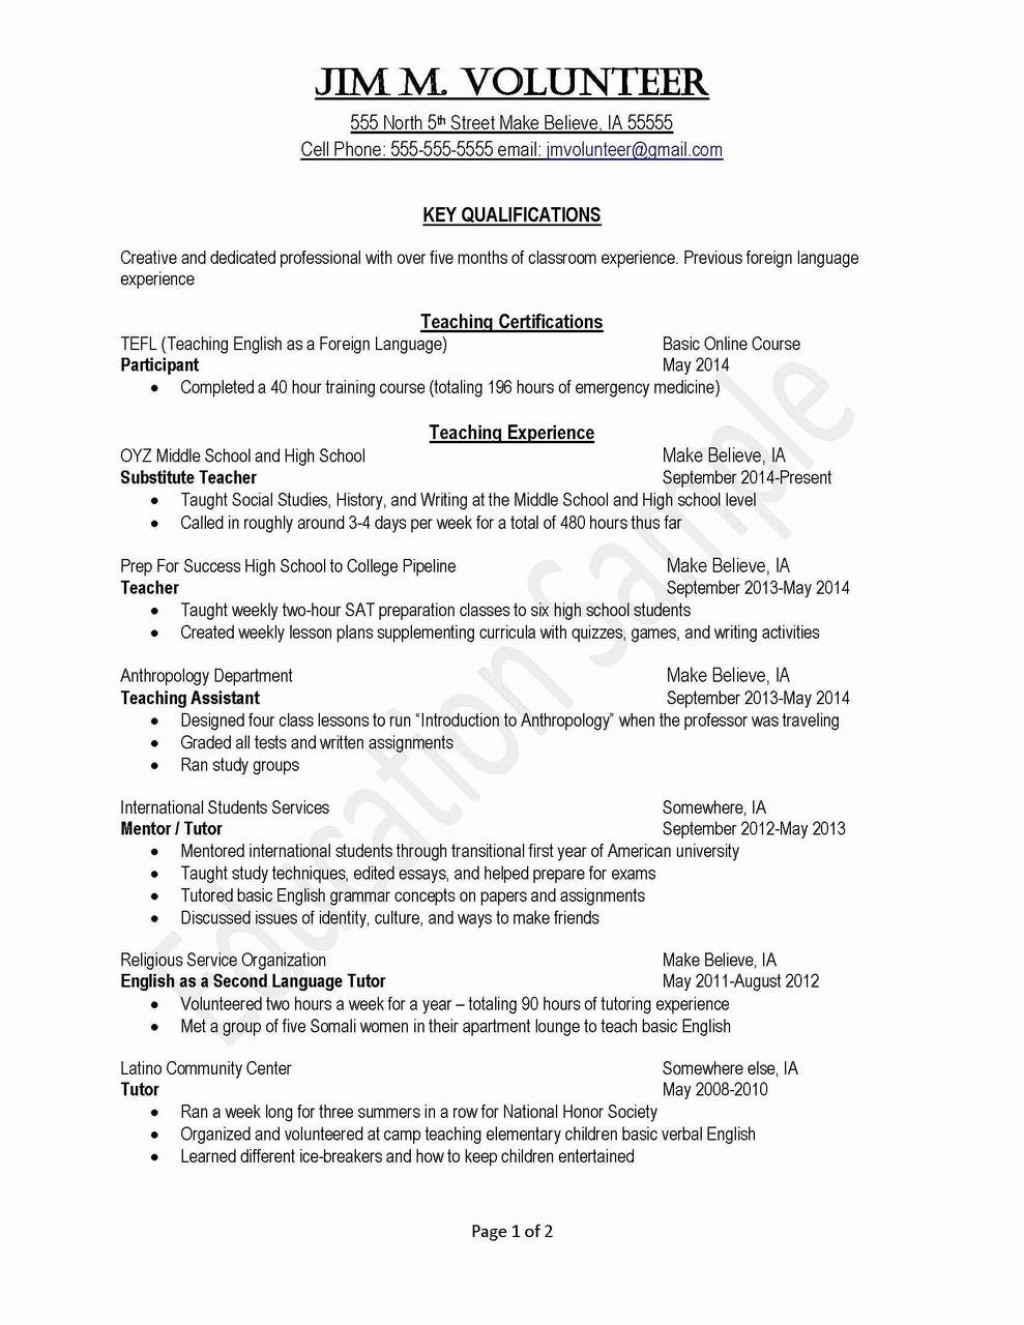 007 Private Tutor Resume Sample On College Essay Long Island English Amazing Best Collection Tutoring Rates Bay Area Tutorial Chicago Nj Price Near Me San Diego Cost Unique Free Toronto Large